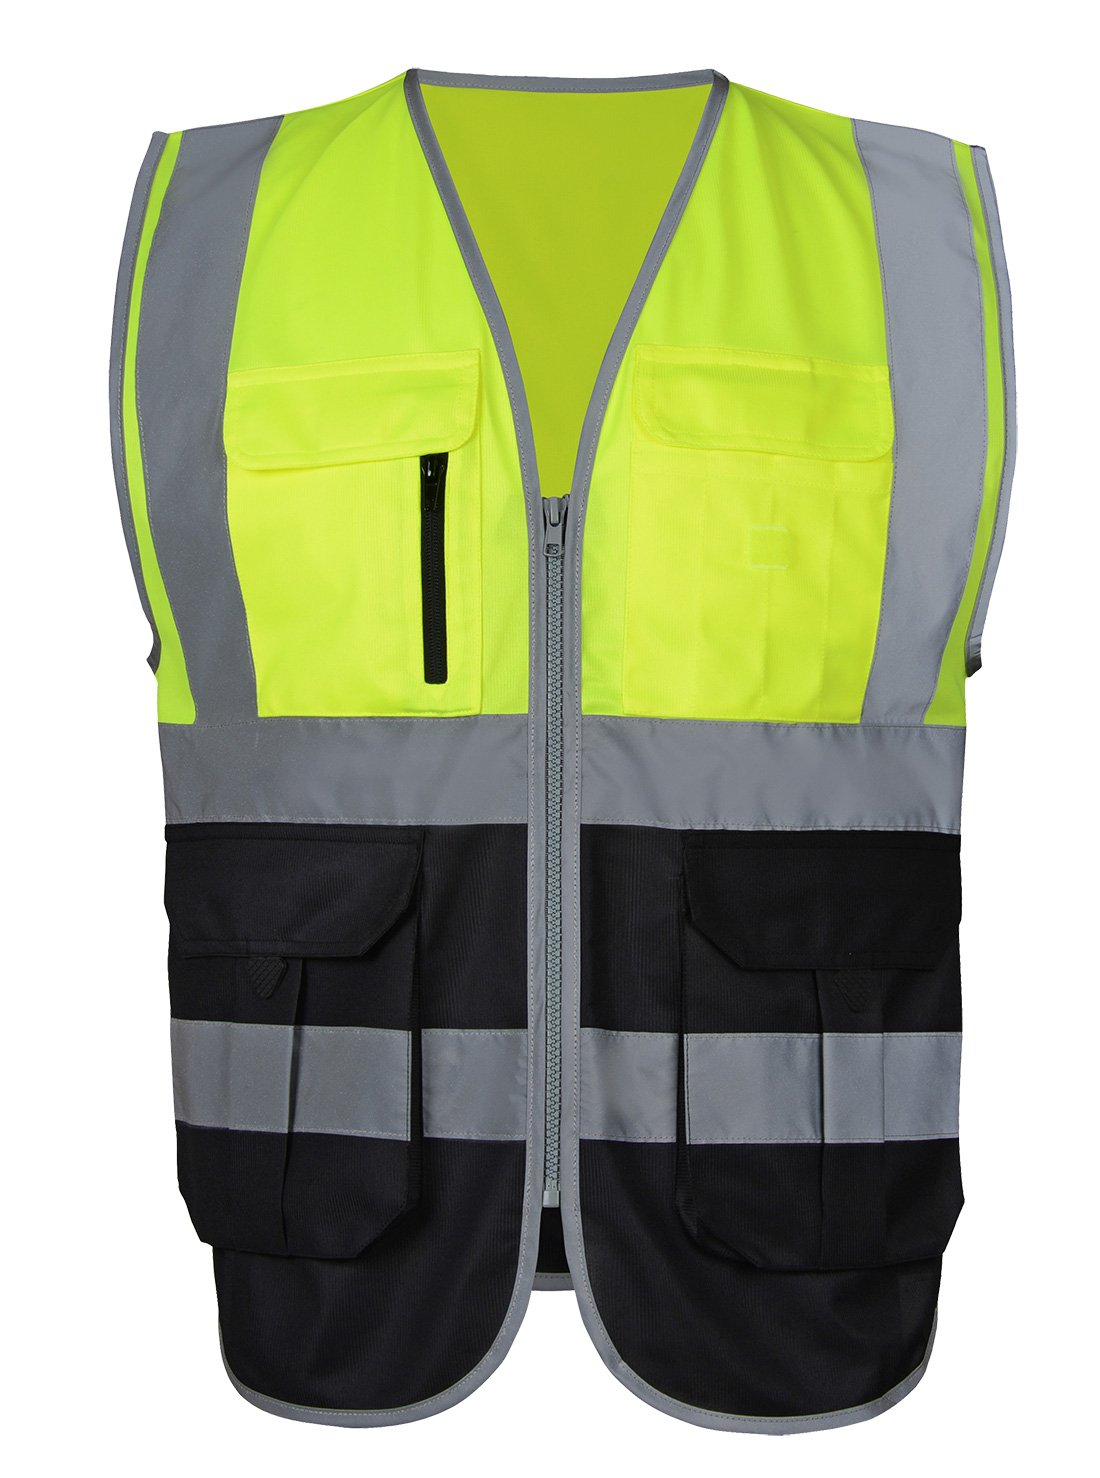 High Visibility Security Safety Vest Reflective Zipper Front Multi Pockets Outdoor Safety Vest for Runnning Cycling Yellow Black XLarge